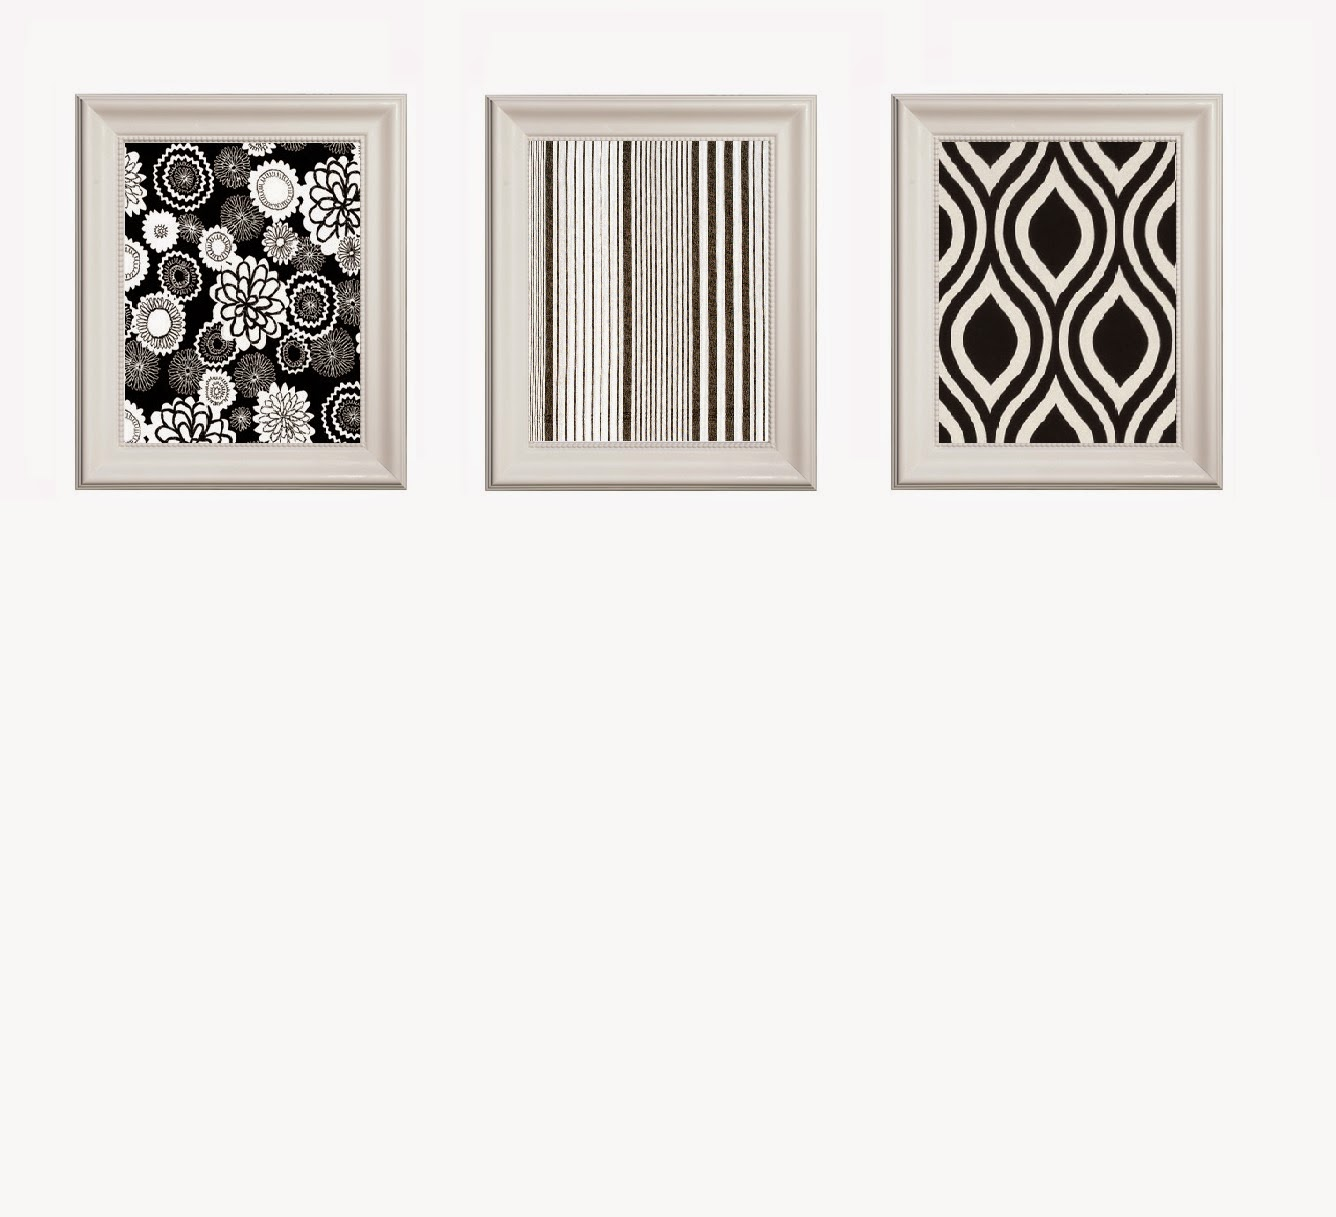 hanging fabric in frames